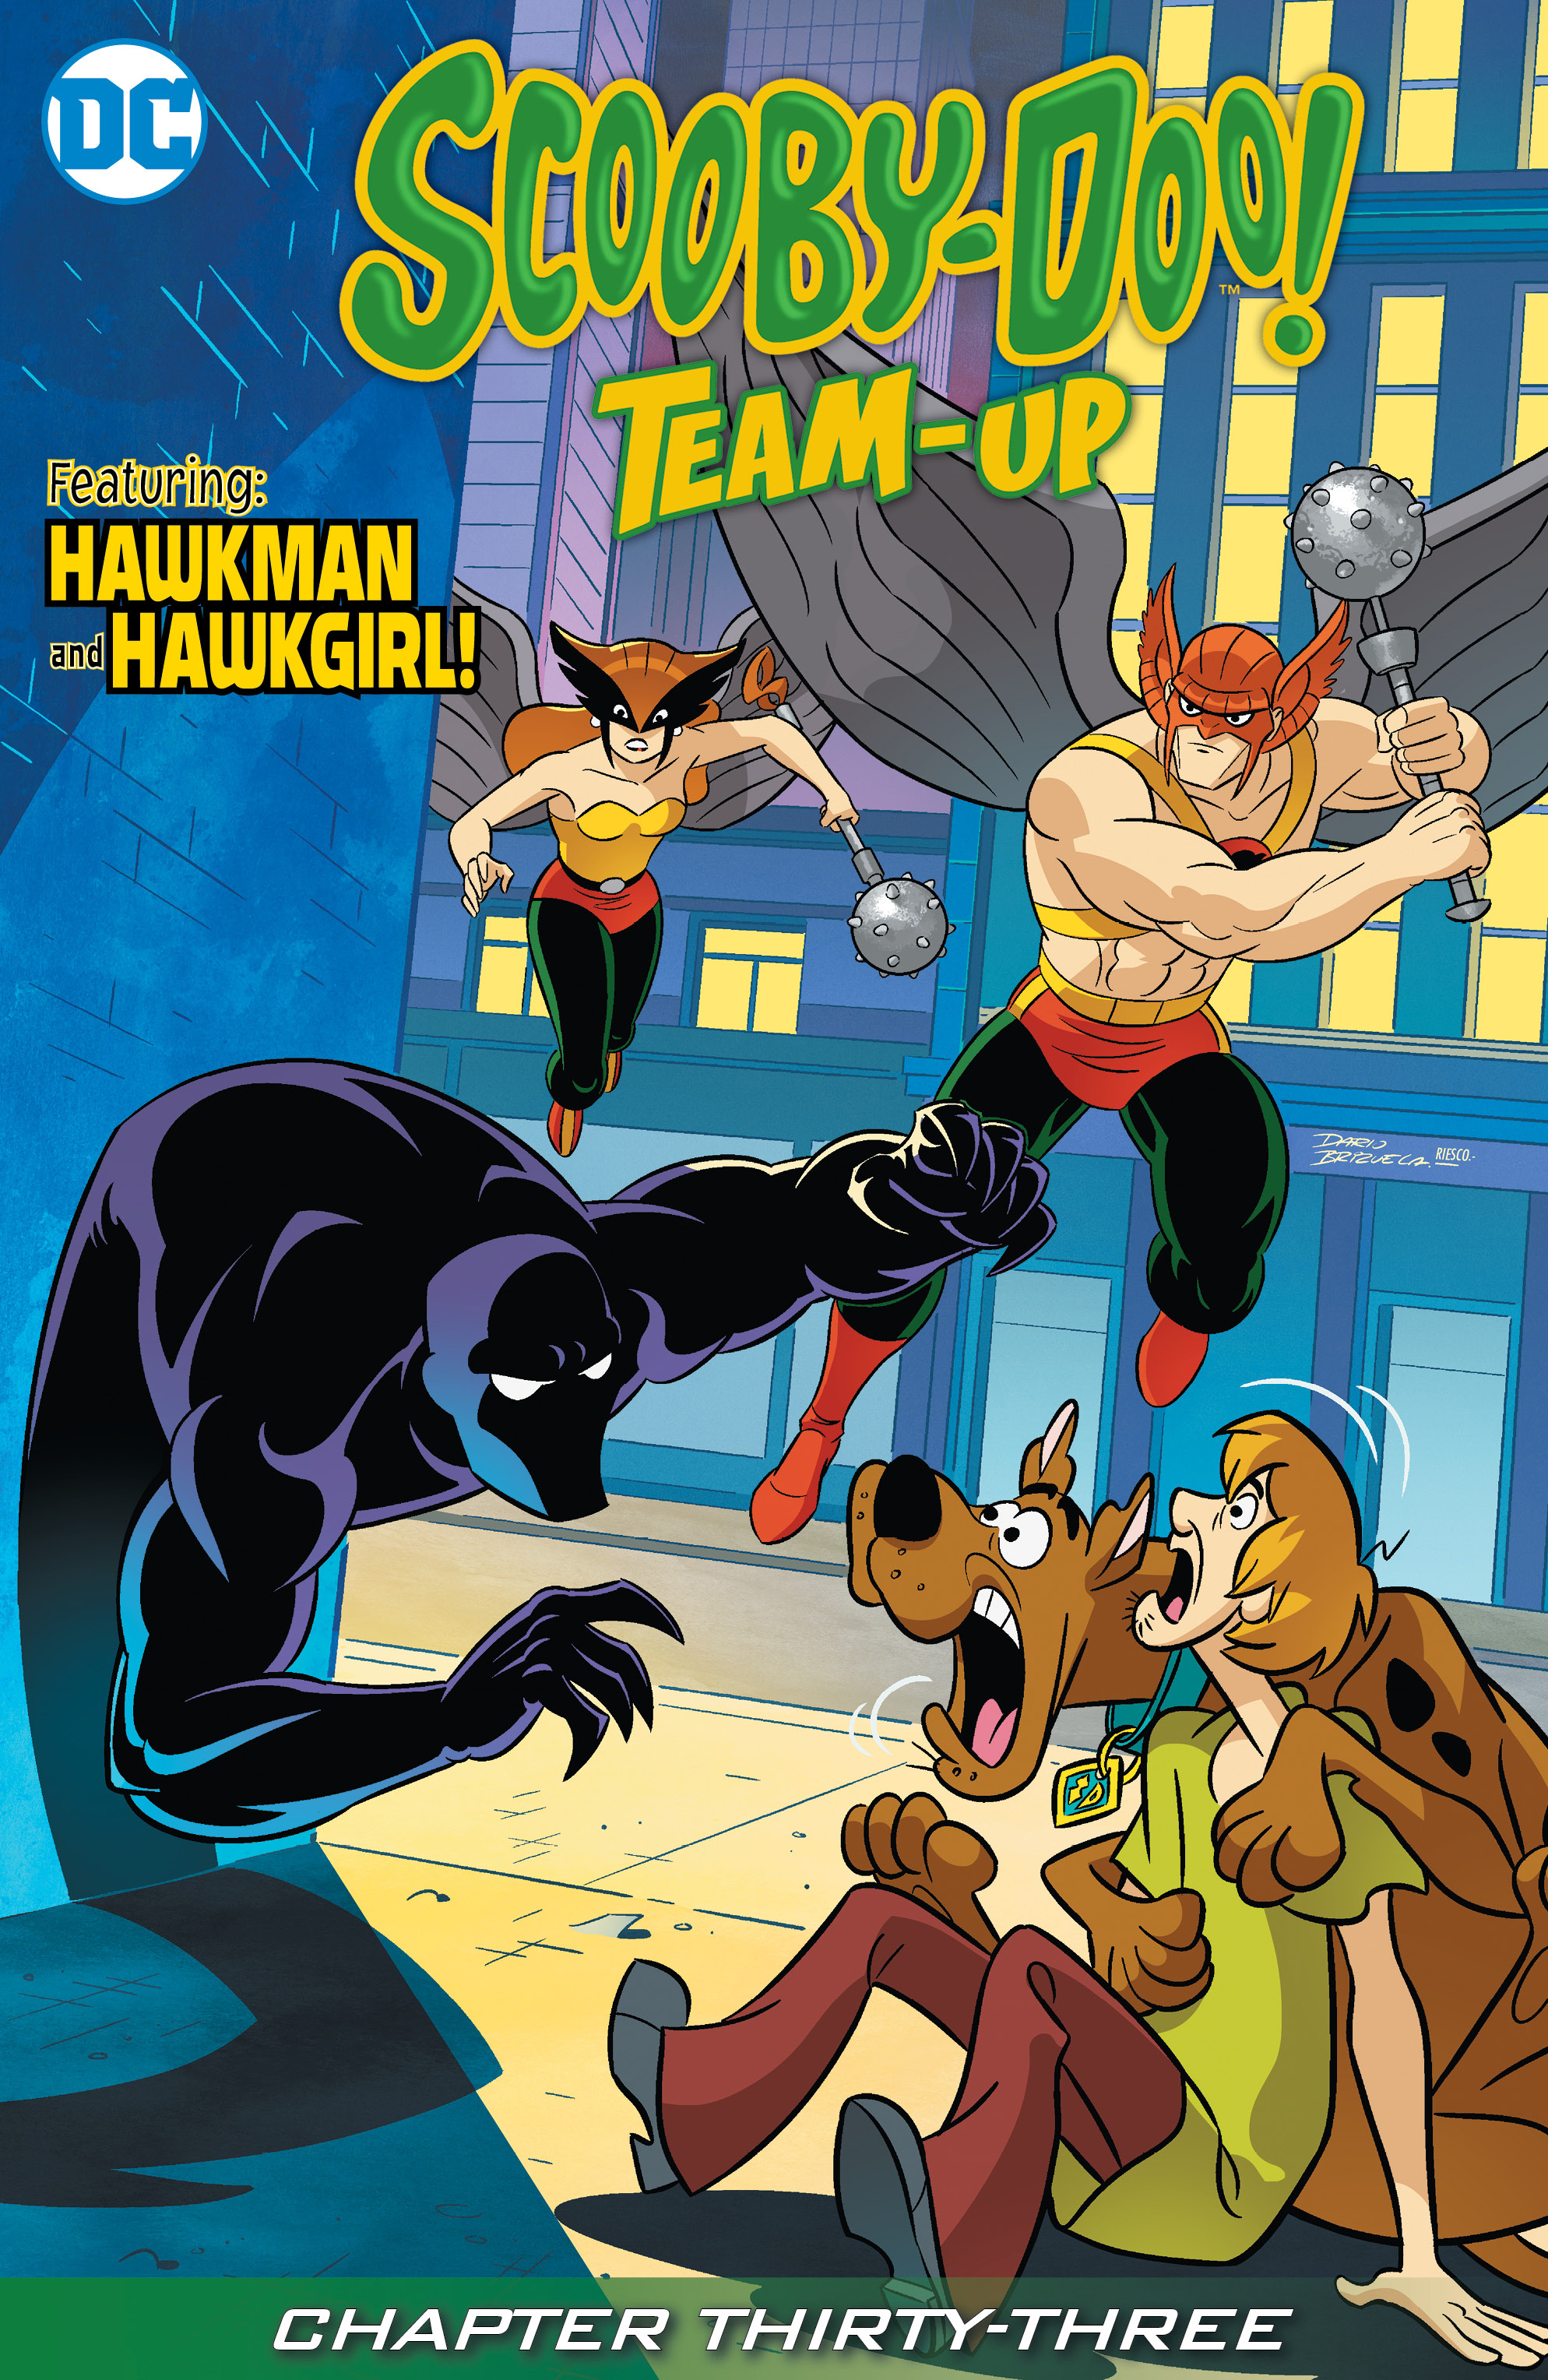 Read online Scooby-Doo! Team-Up comic -  Issue #33 - 2